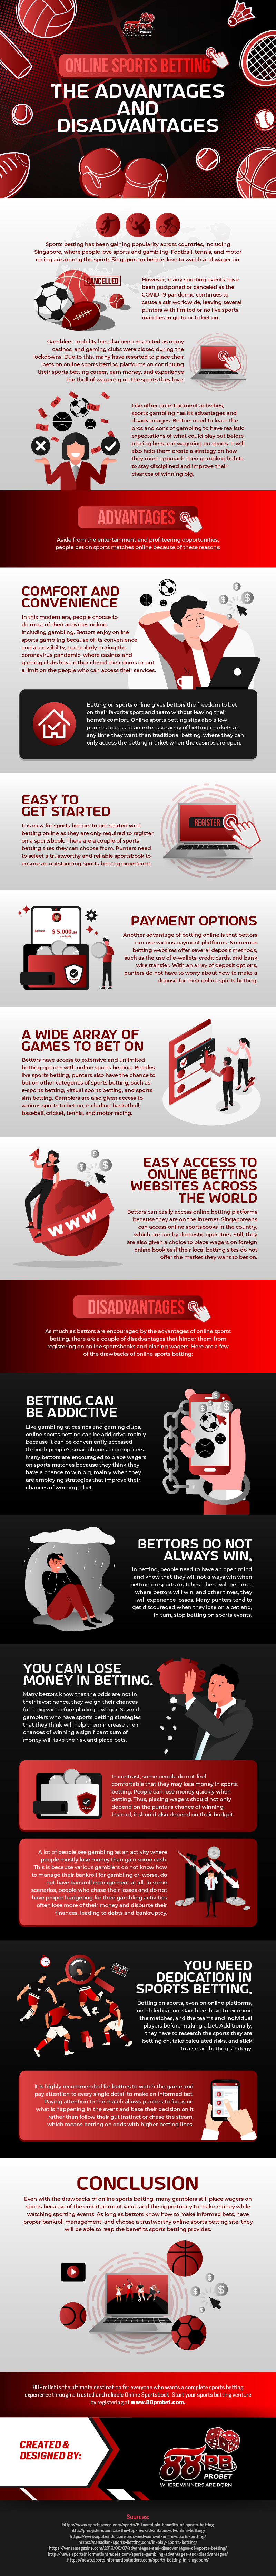 Online Sports Betting: The Advantages and Disadvantages